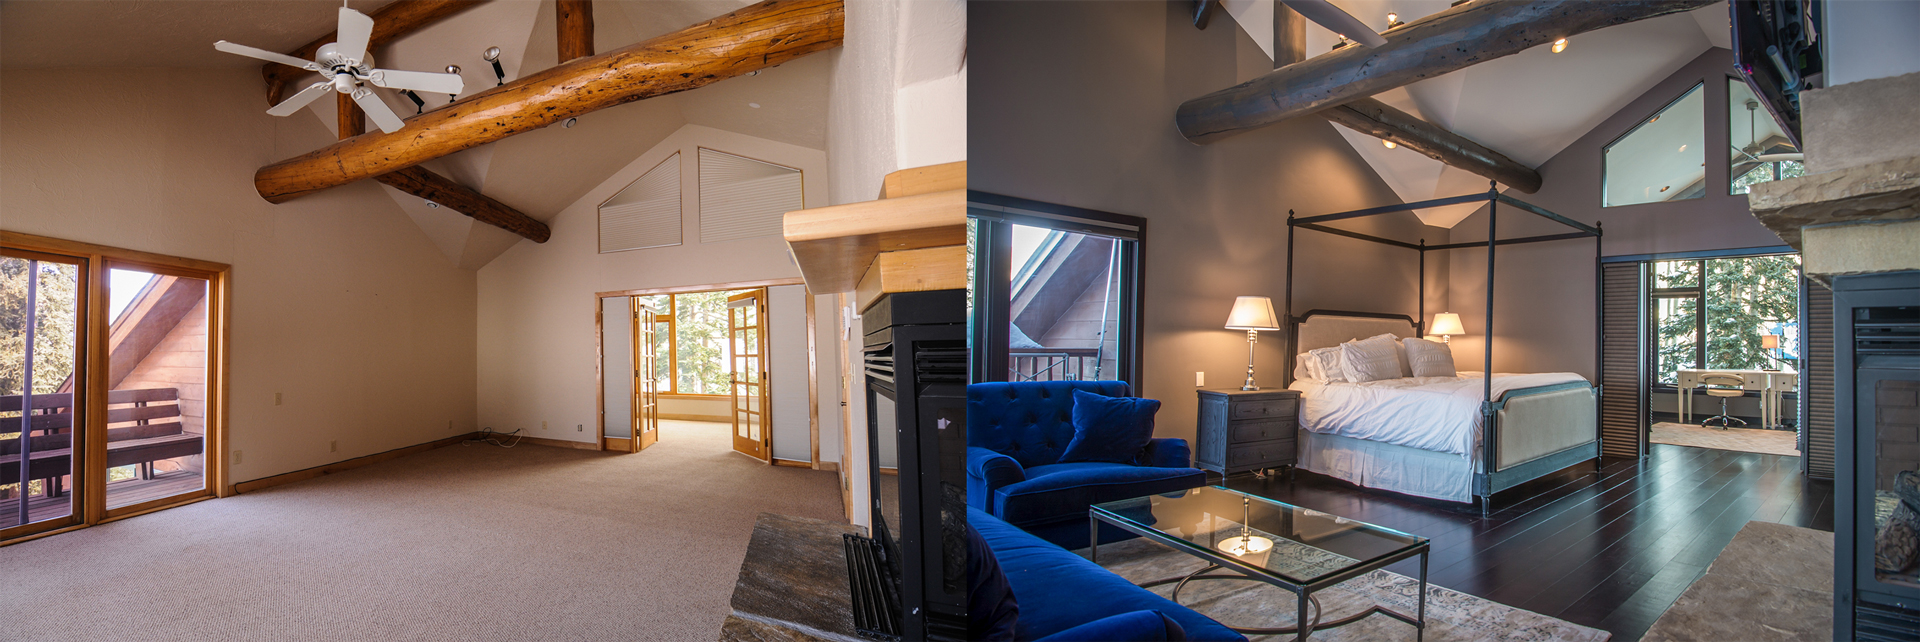 Crested Butte Home Remodel Historic Renovation - Somrak - Before and After Photos